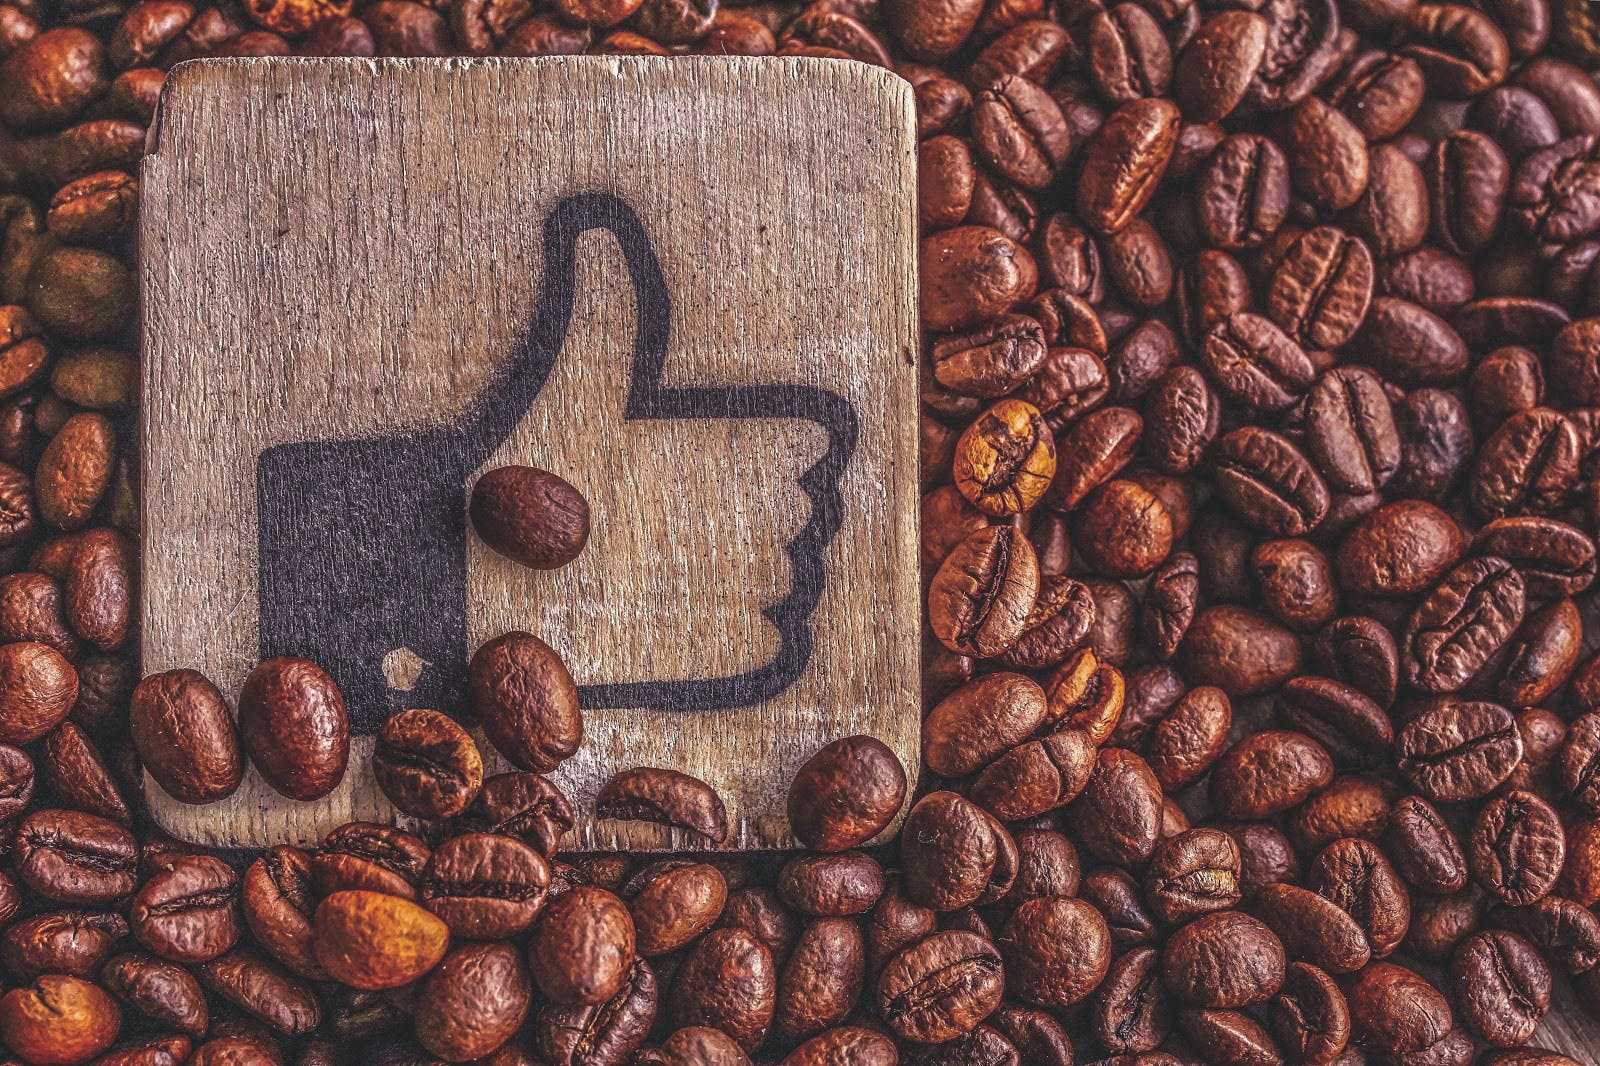 coffee beans with a wooden sign branded with the Facebook like emoticon